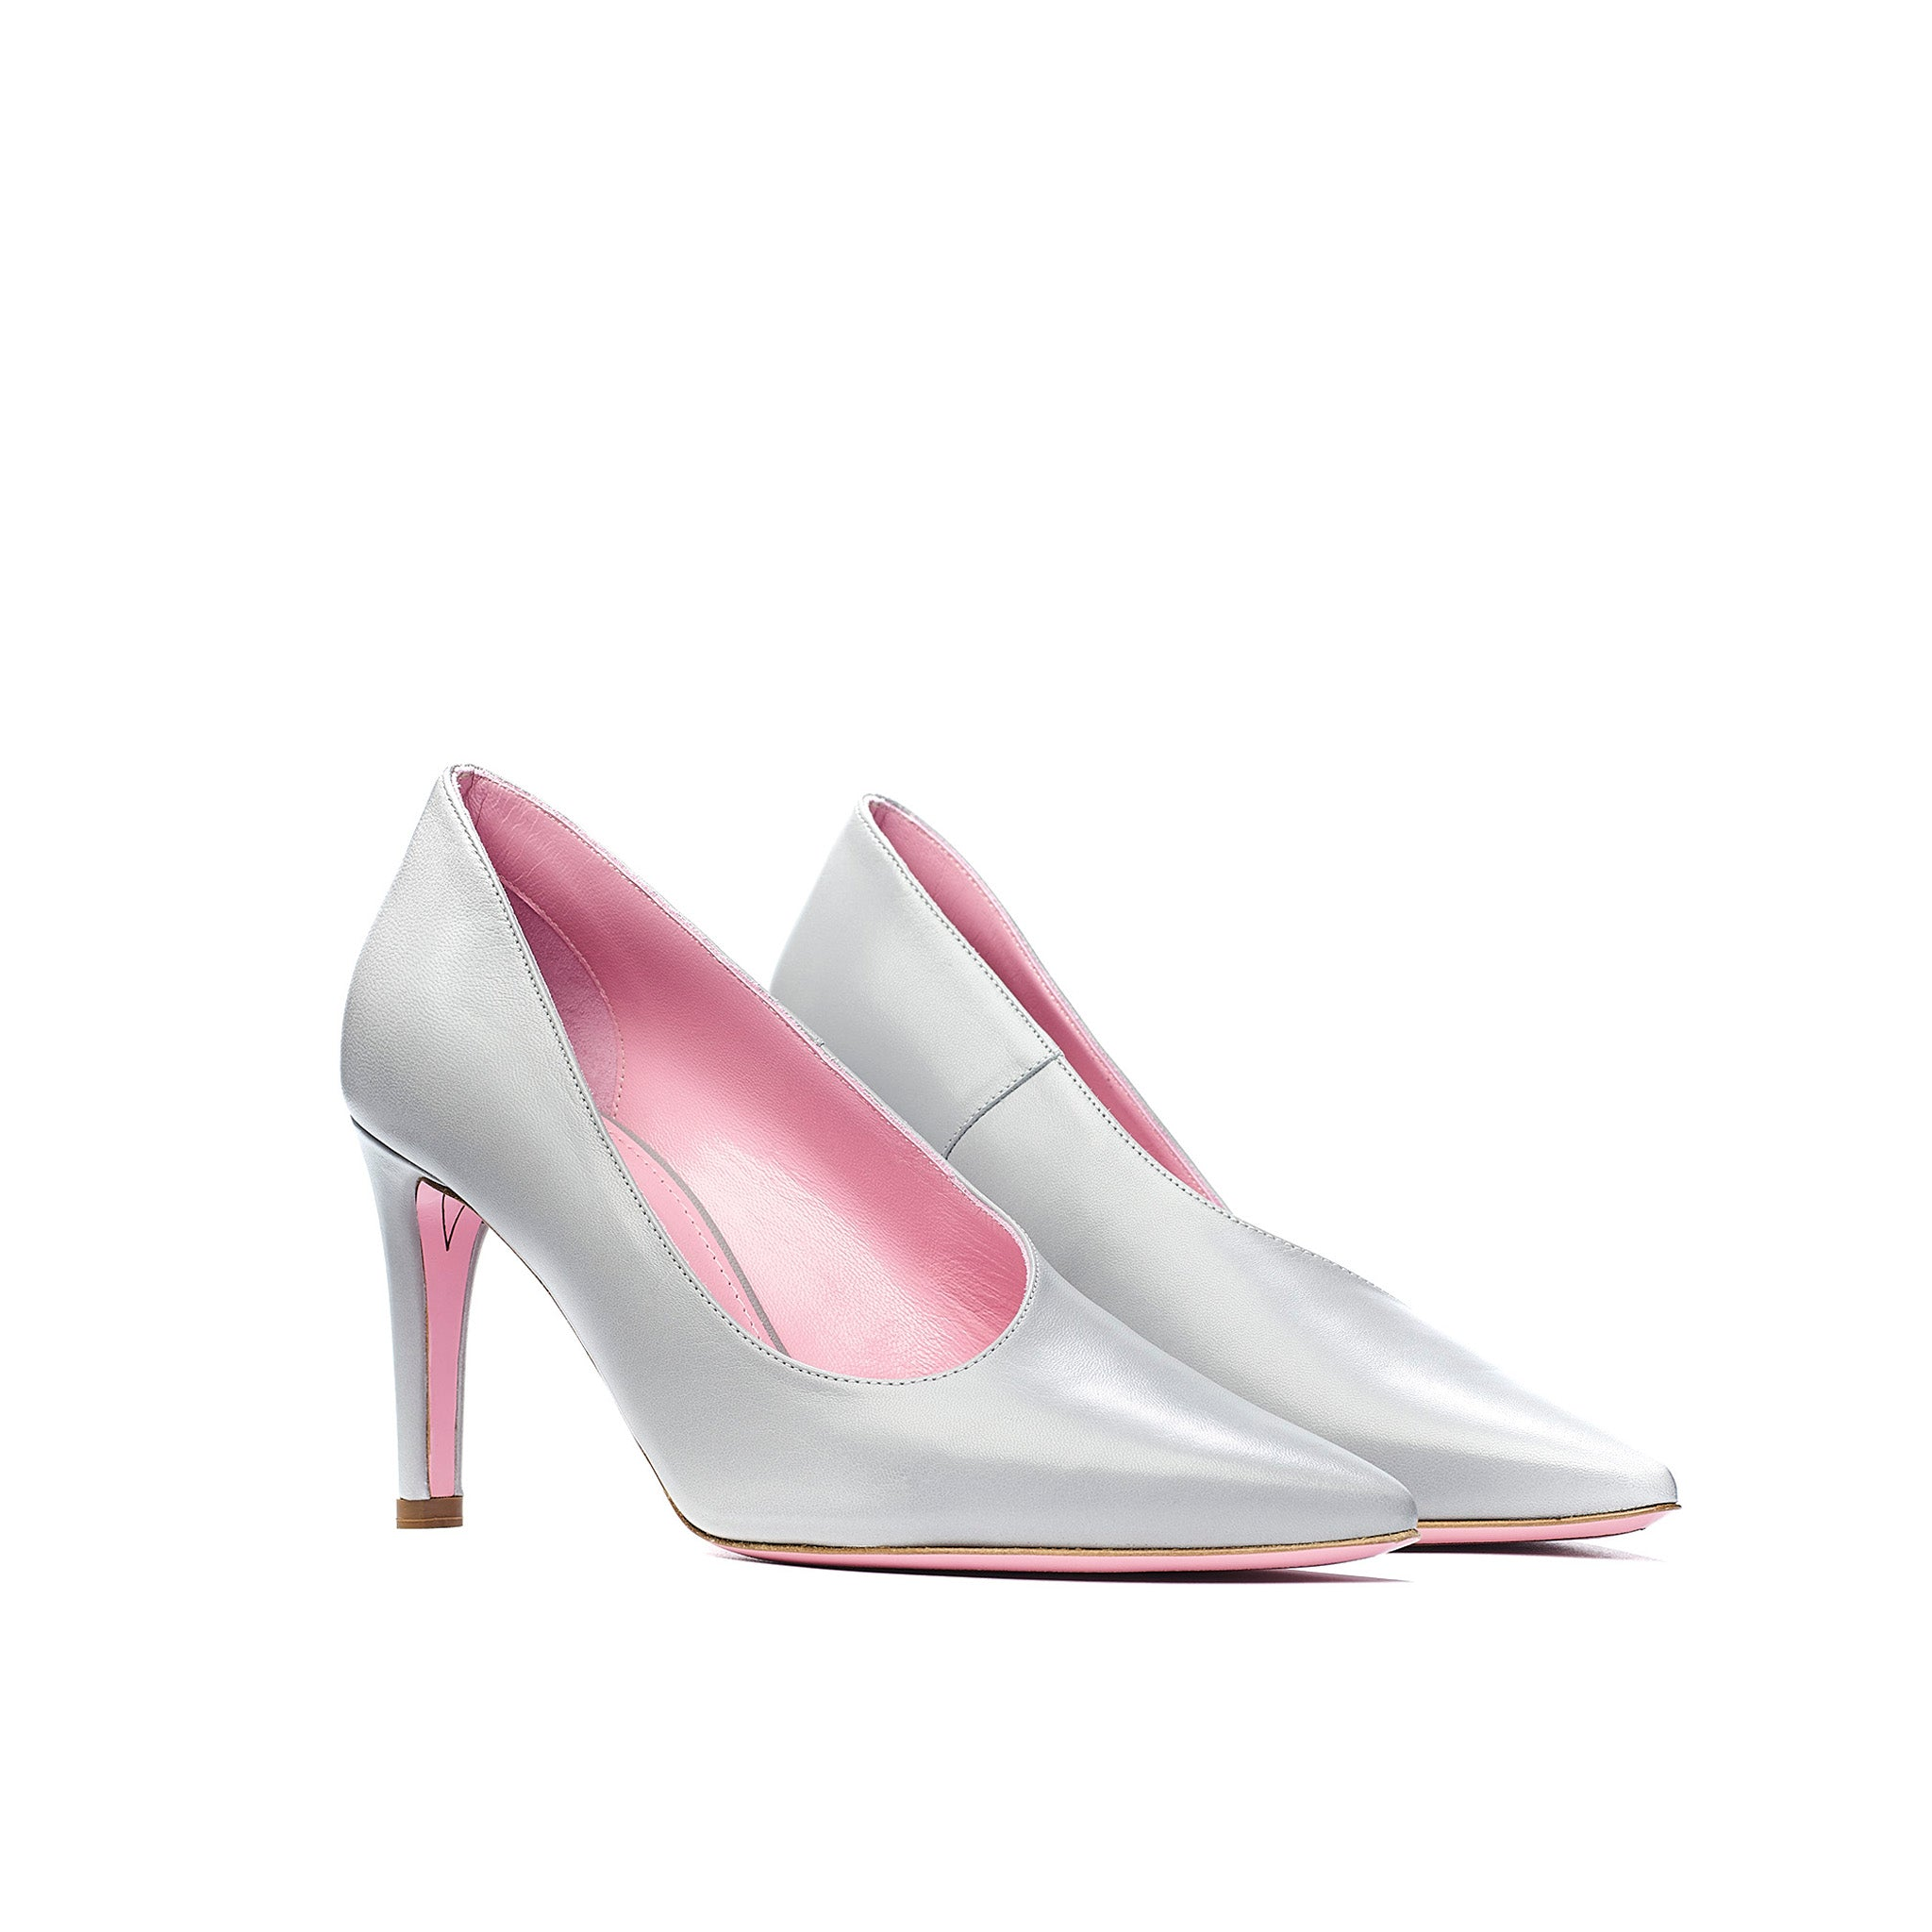 Phare Asymmetrical pump in grigio leather 3/4 view